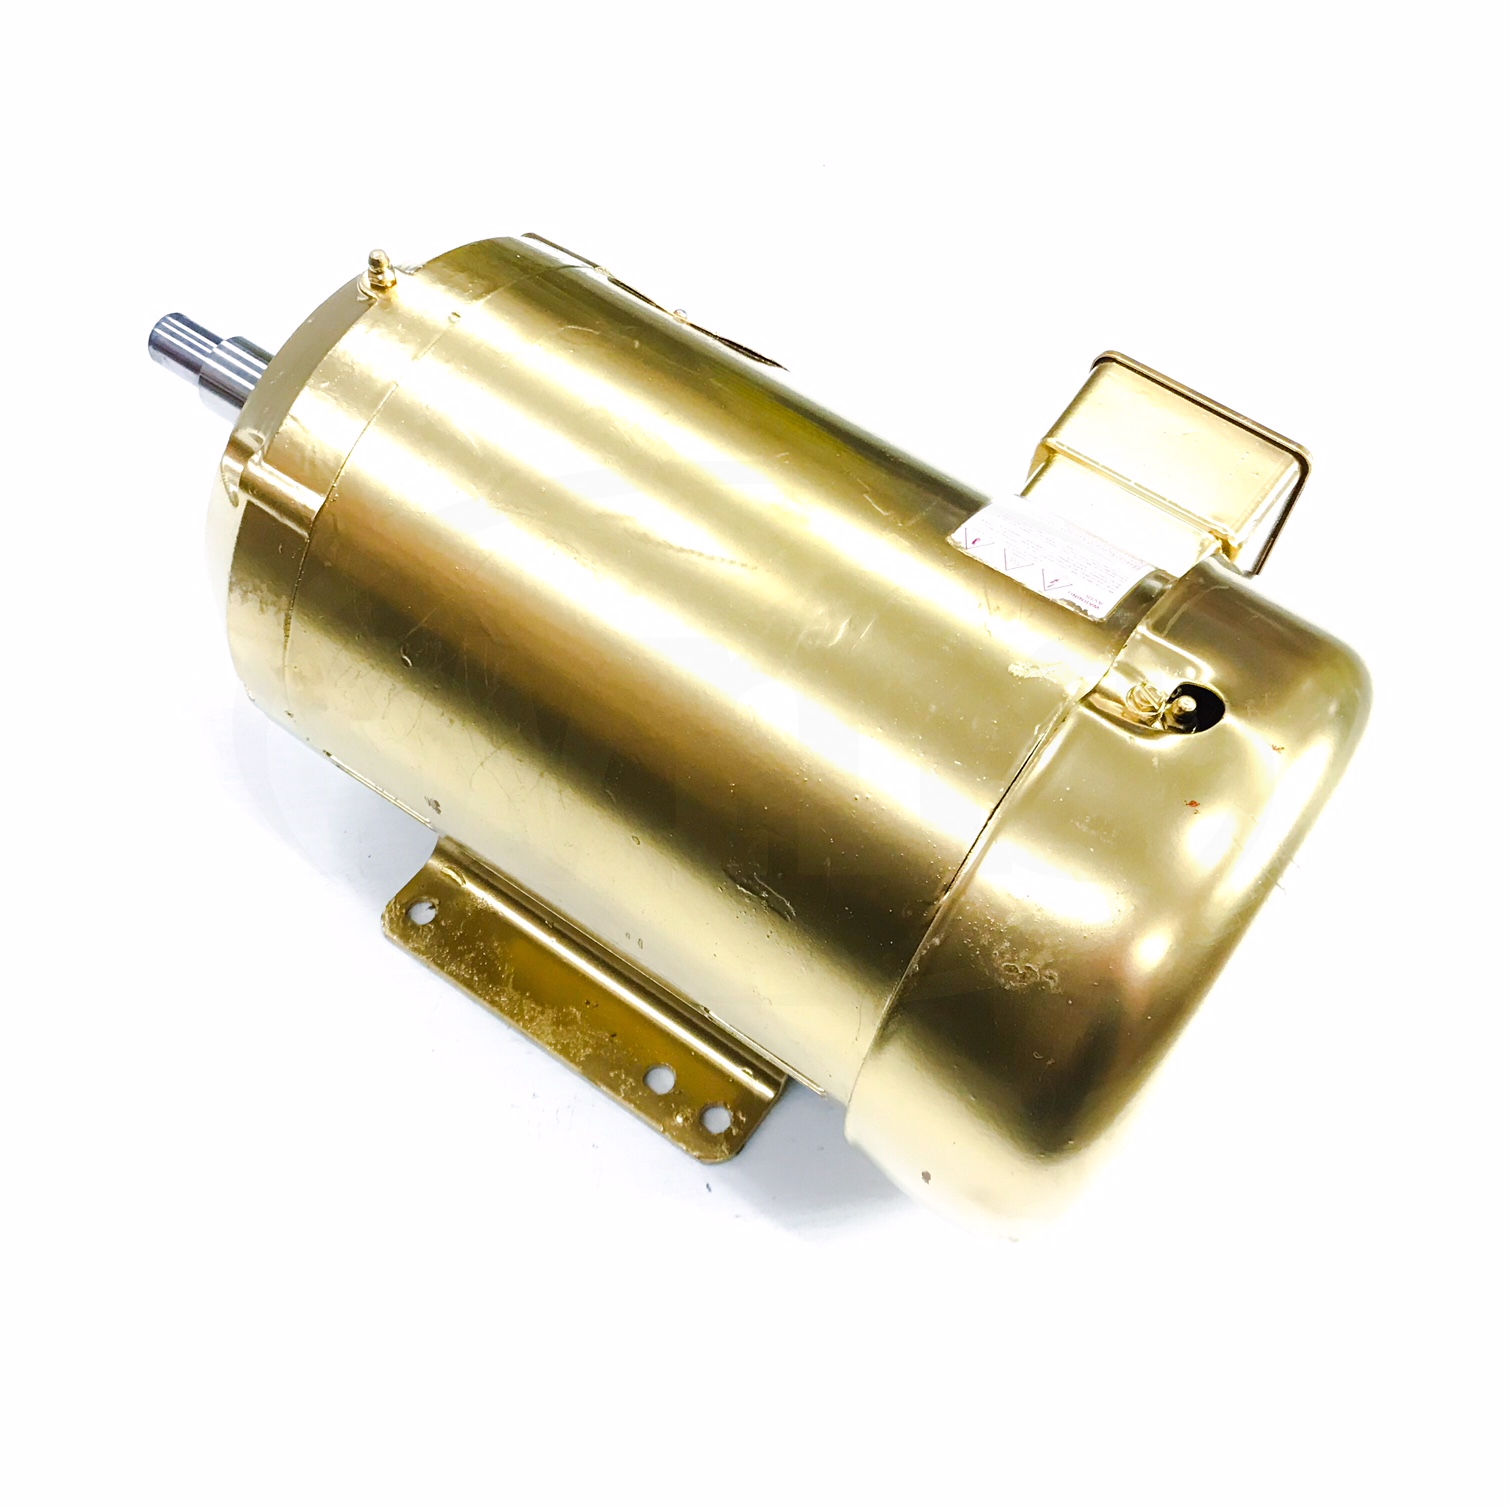 1203078735 000010 baldor electric motor 3hp for Baldor electric motor parts